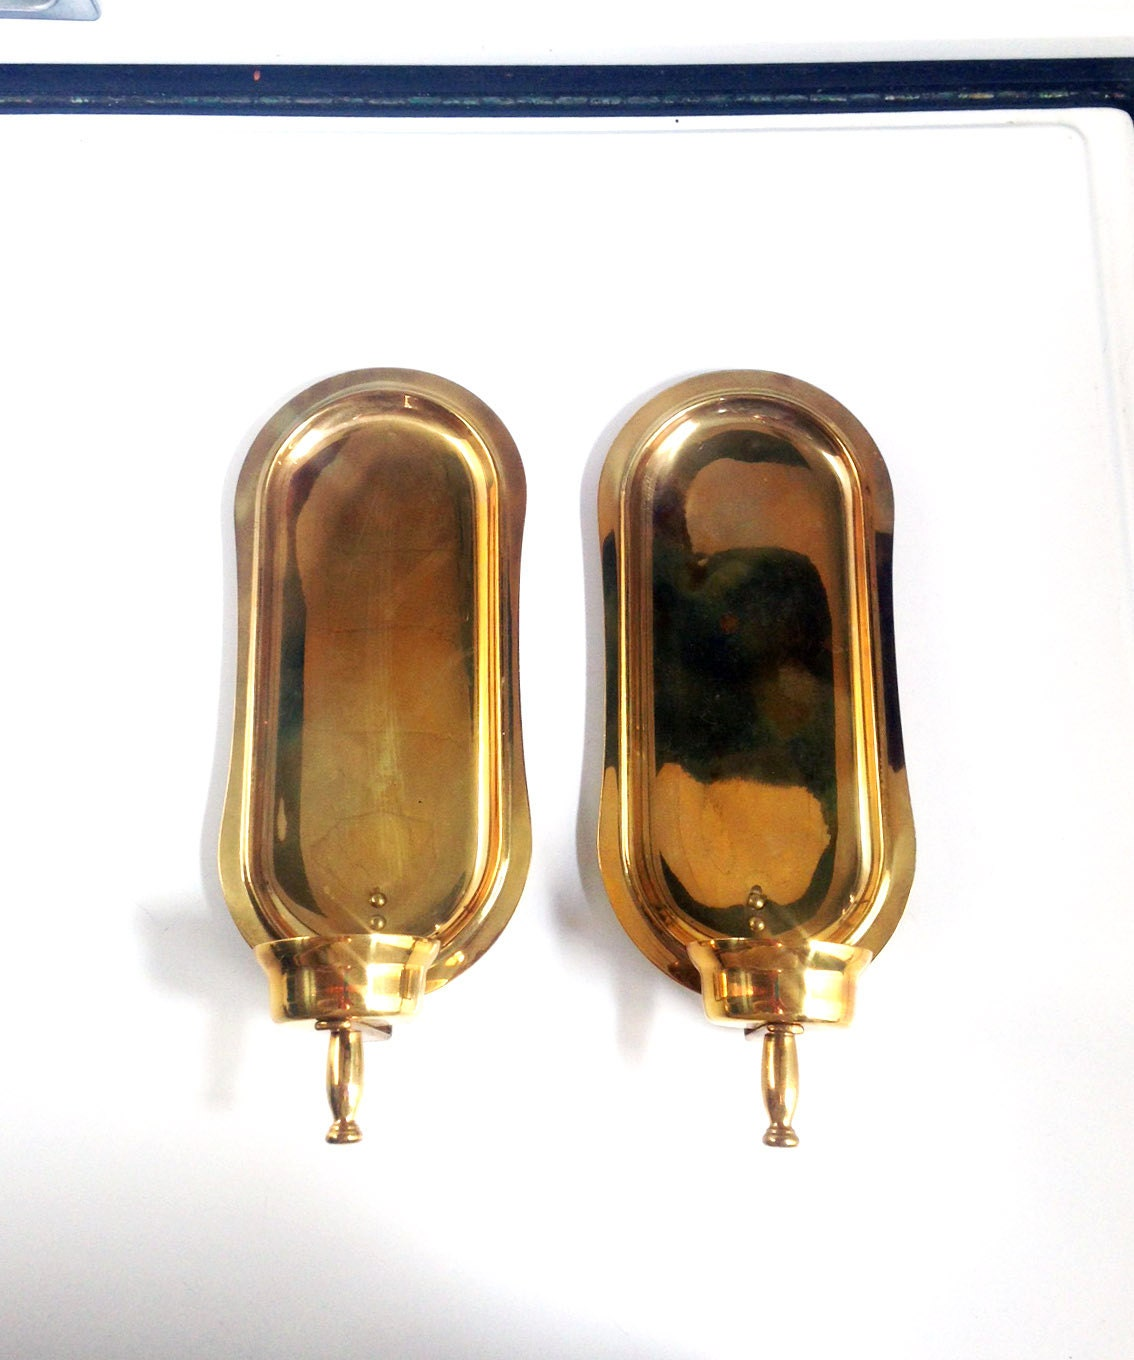 Antique Brass Wall Sconces For Candles : Vintage Brass Wall Sconces / Set of Two Candle Holders